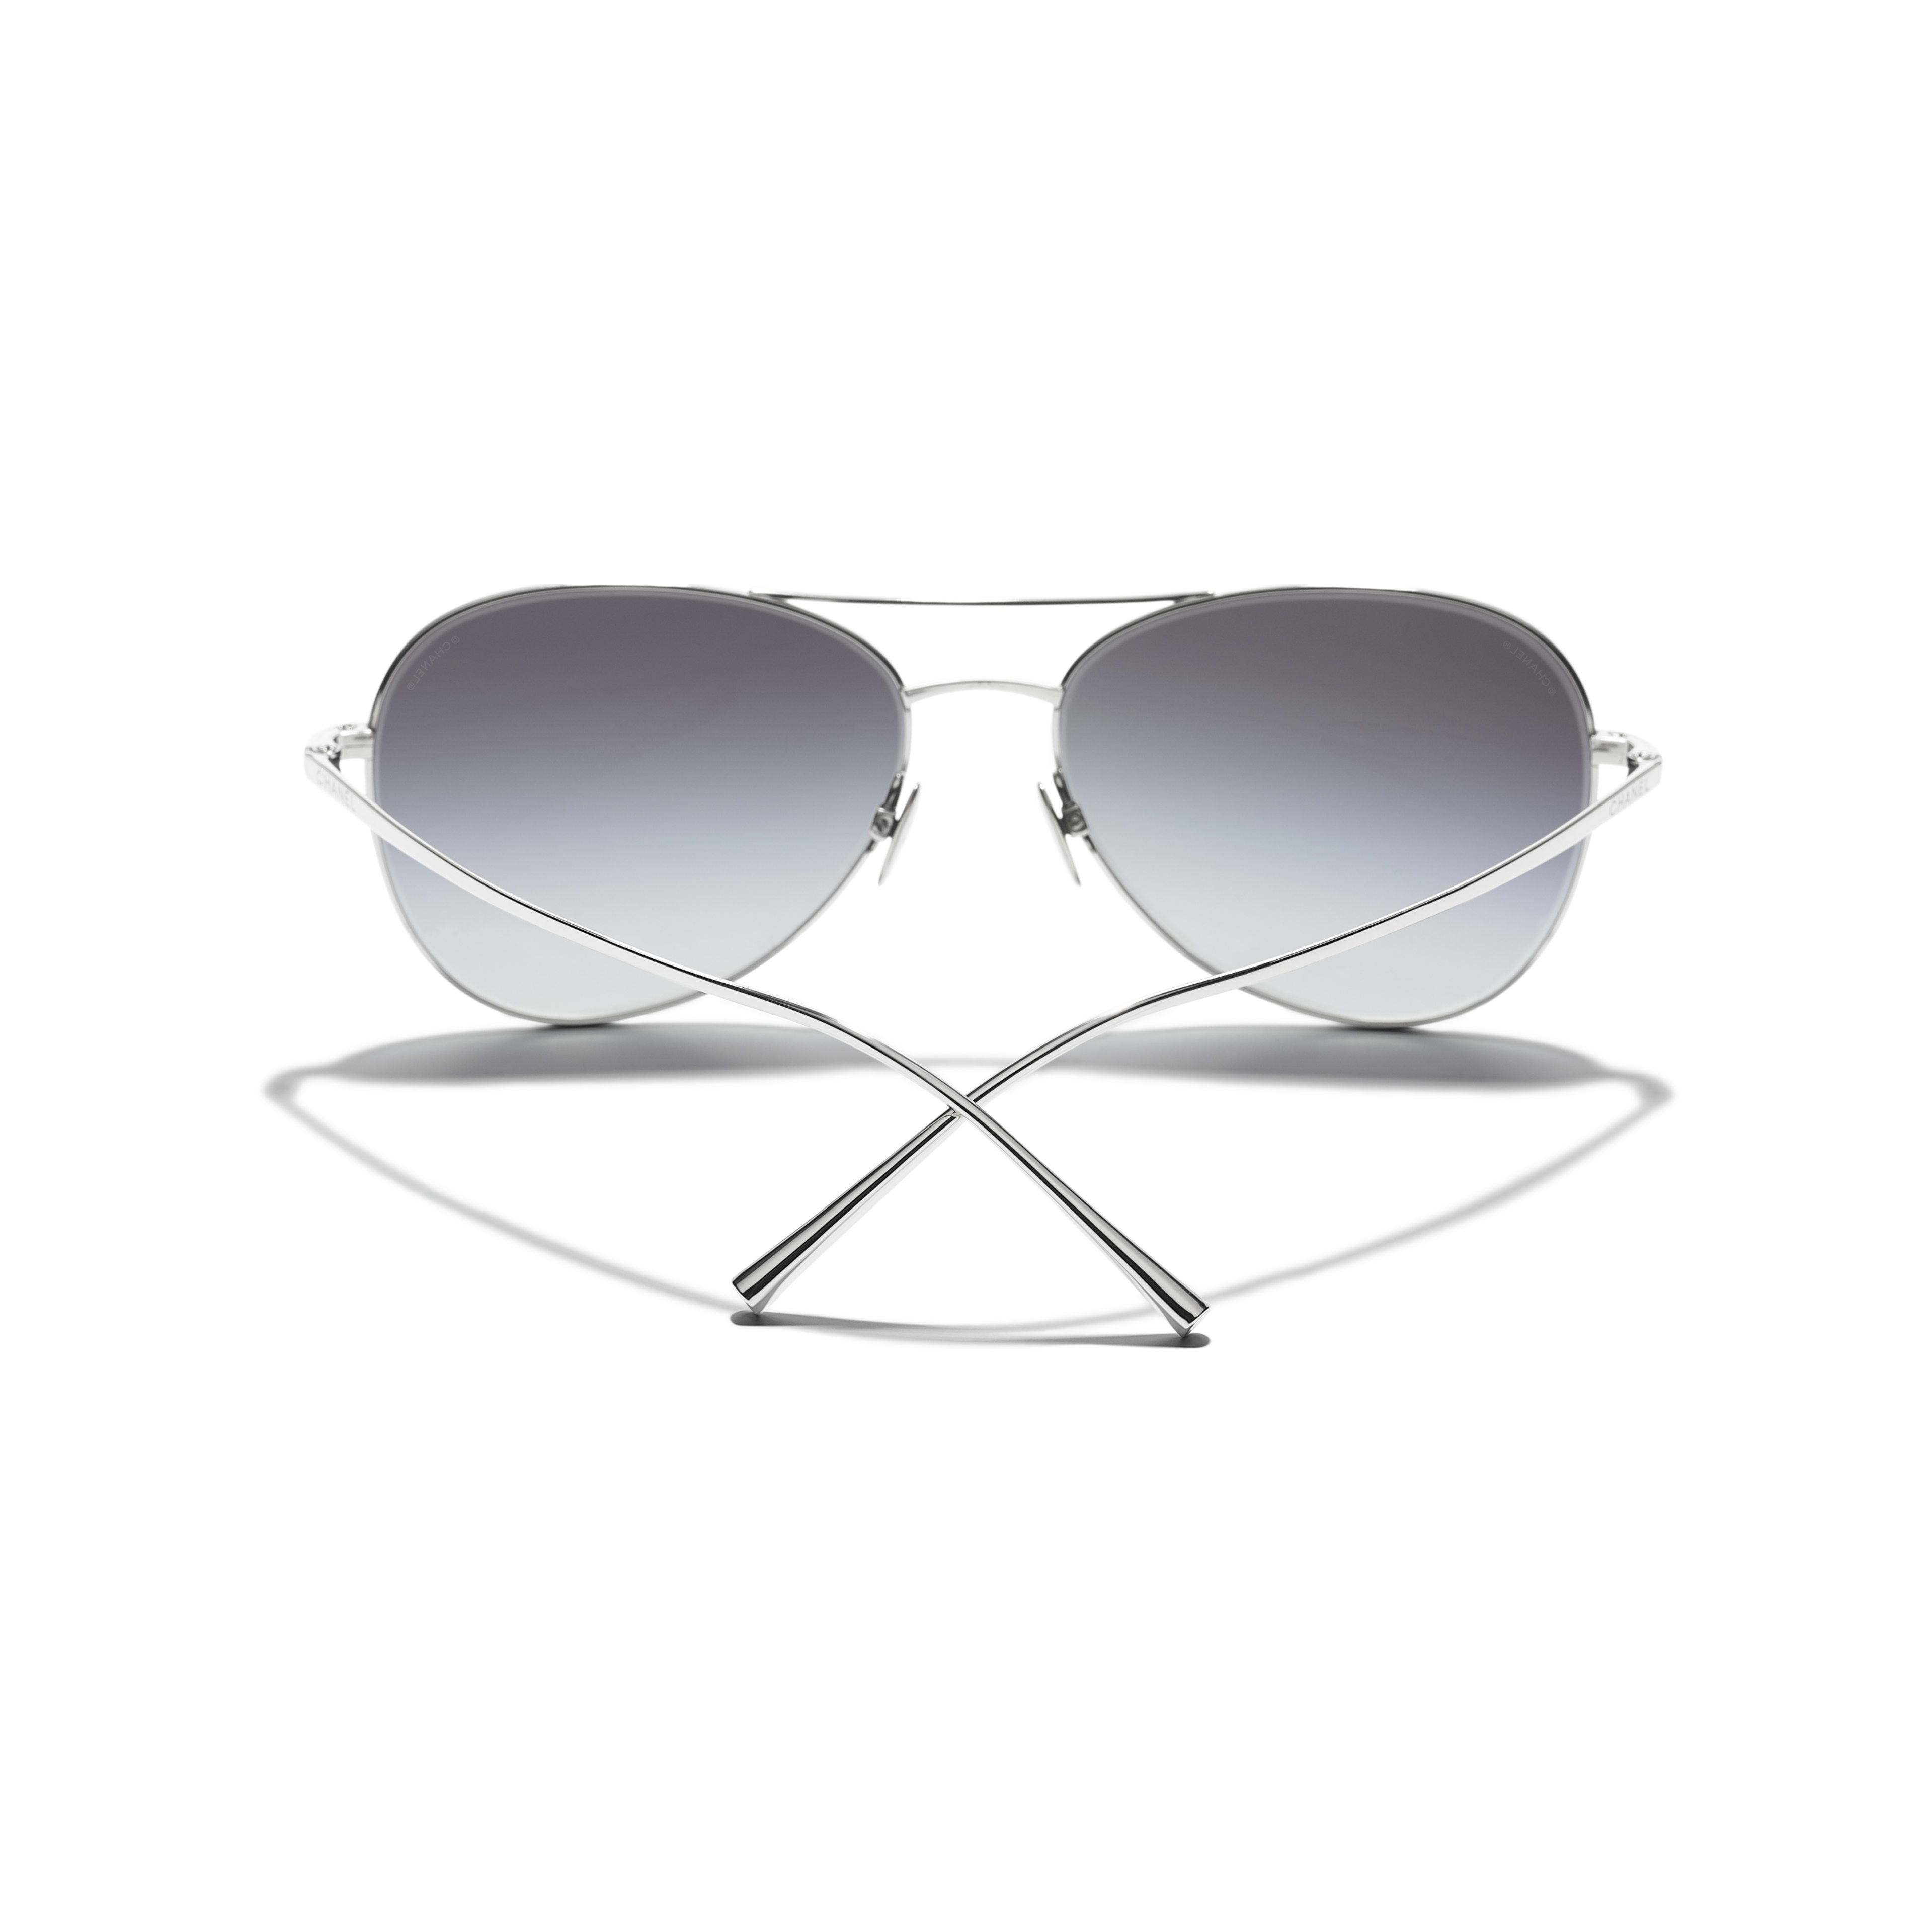 Pilot Sunglasses - Silver - Titanium - Extra view - see full sized version